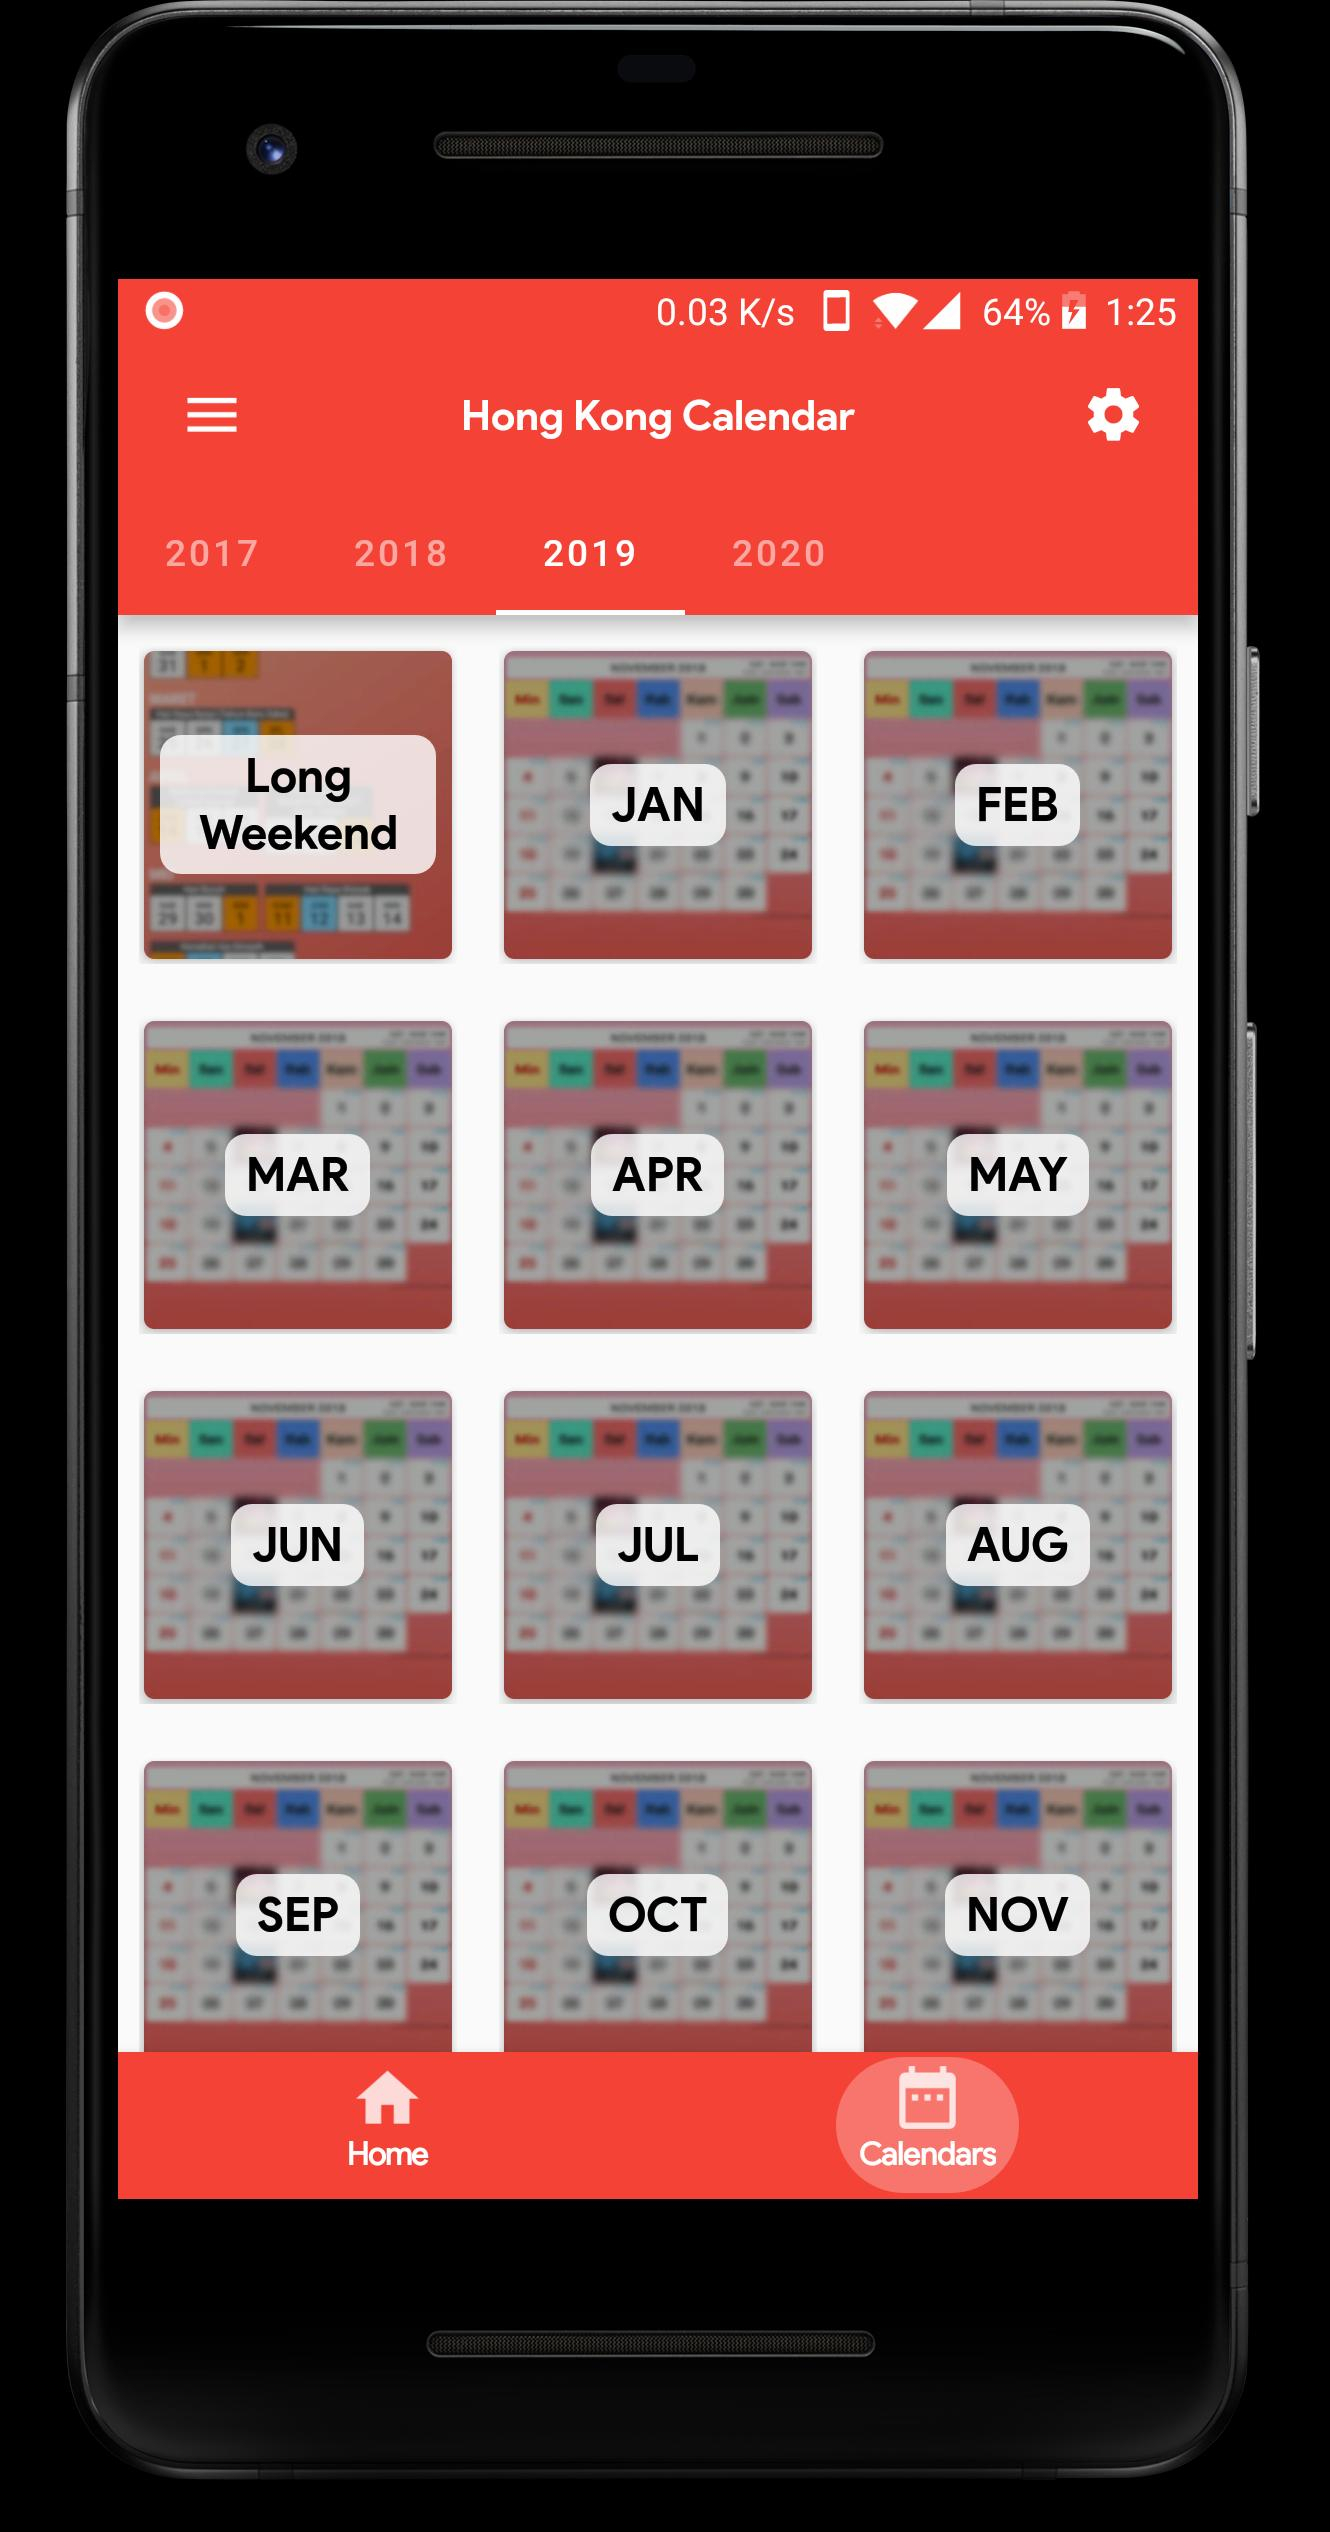 Hong Kong Calendar For Android - Apk Download